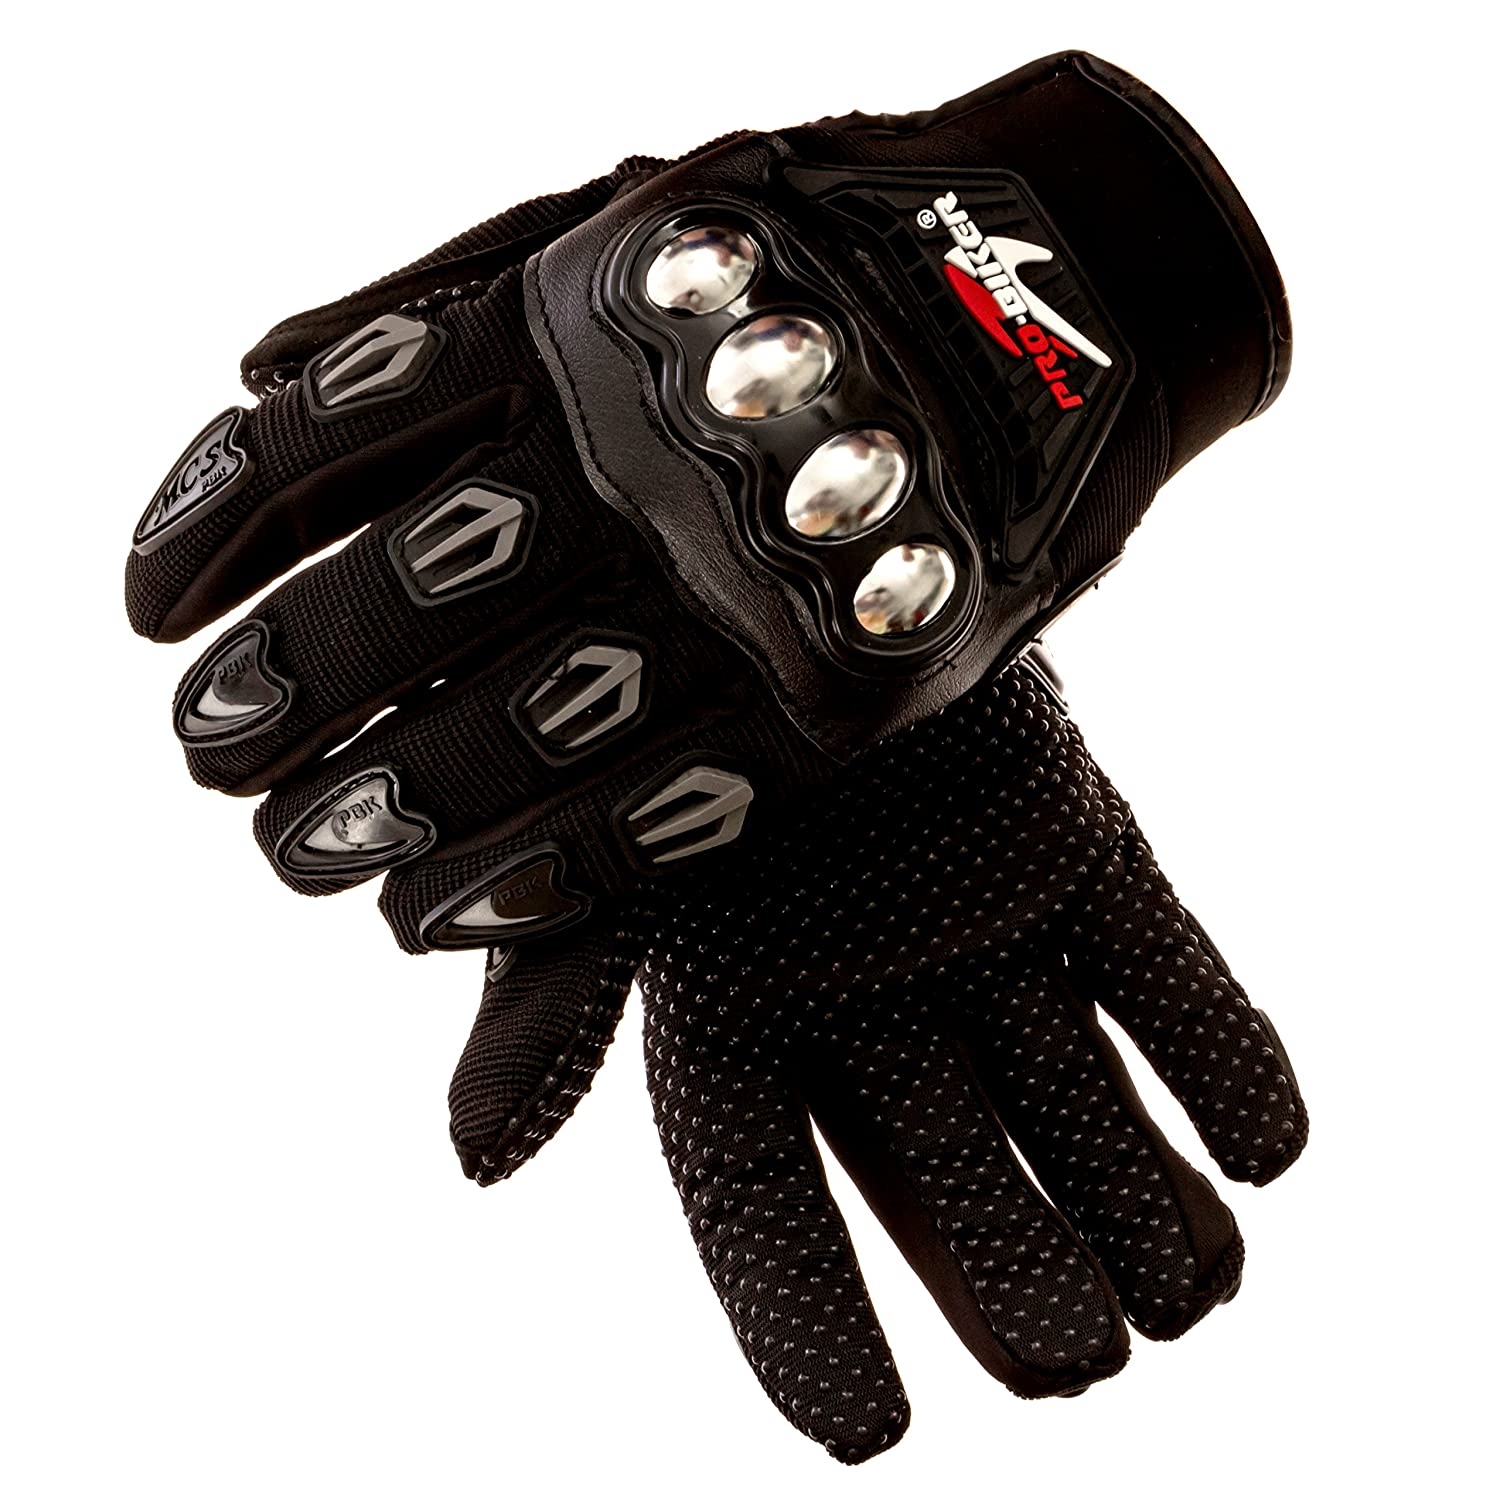 Motorcycle gloves hard knuckles - Amazon Com Steel Knuckle Motorcycle Gloves Pair Motorbike Protective Riding Accessories Tactical Racing Gear Automotive